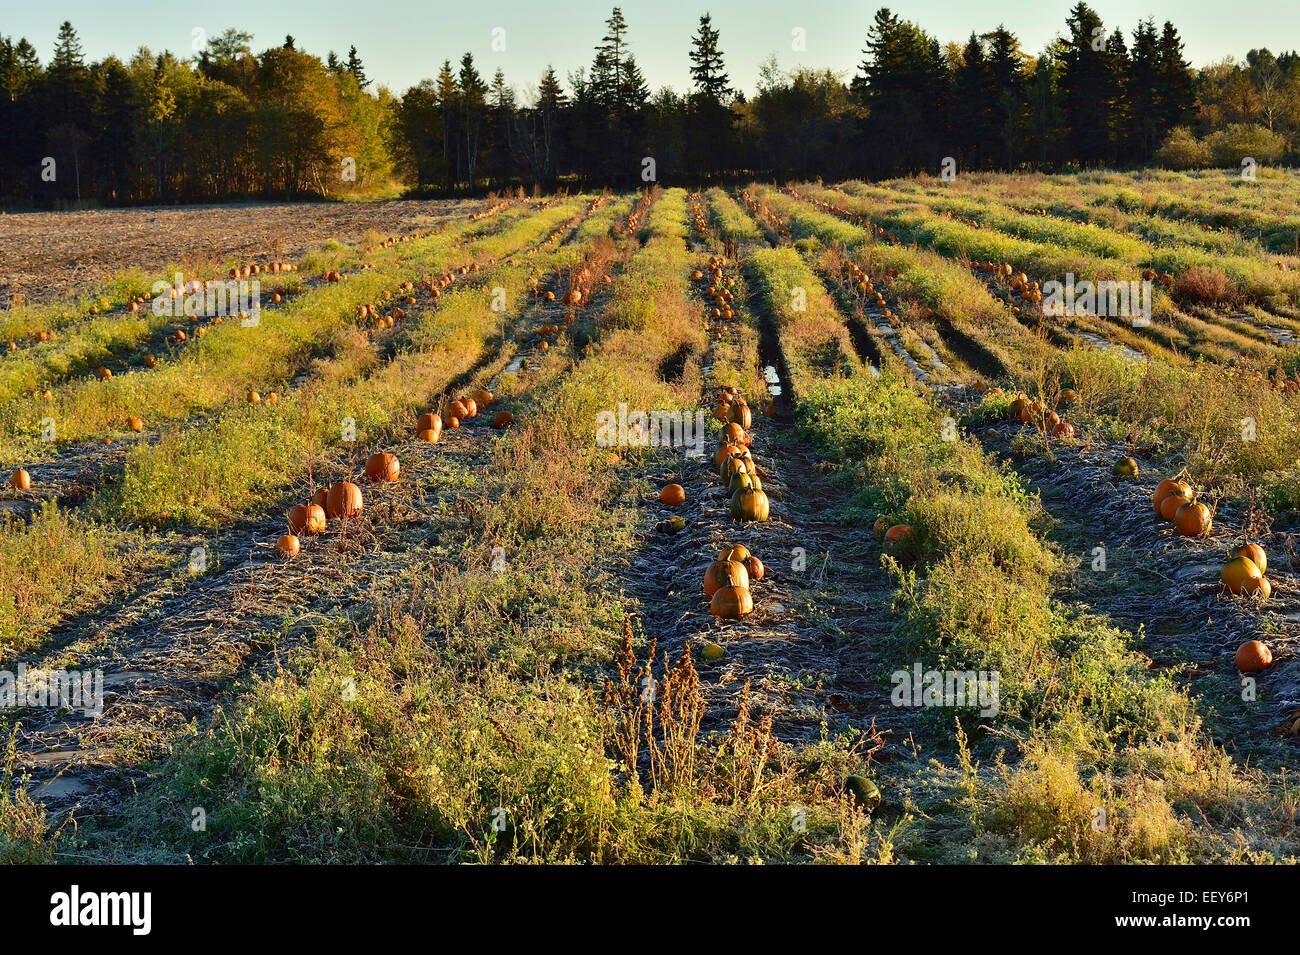 Field of pumpkins ready for harvest - Stock Image